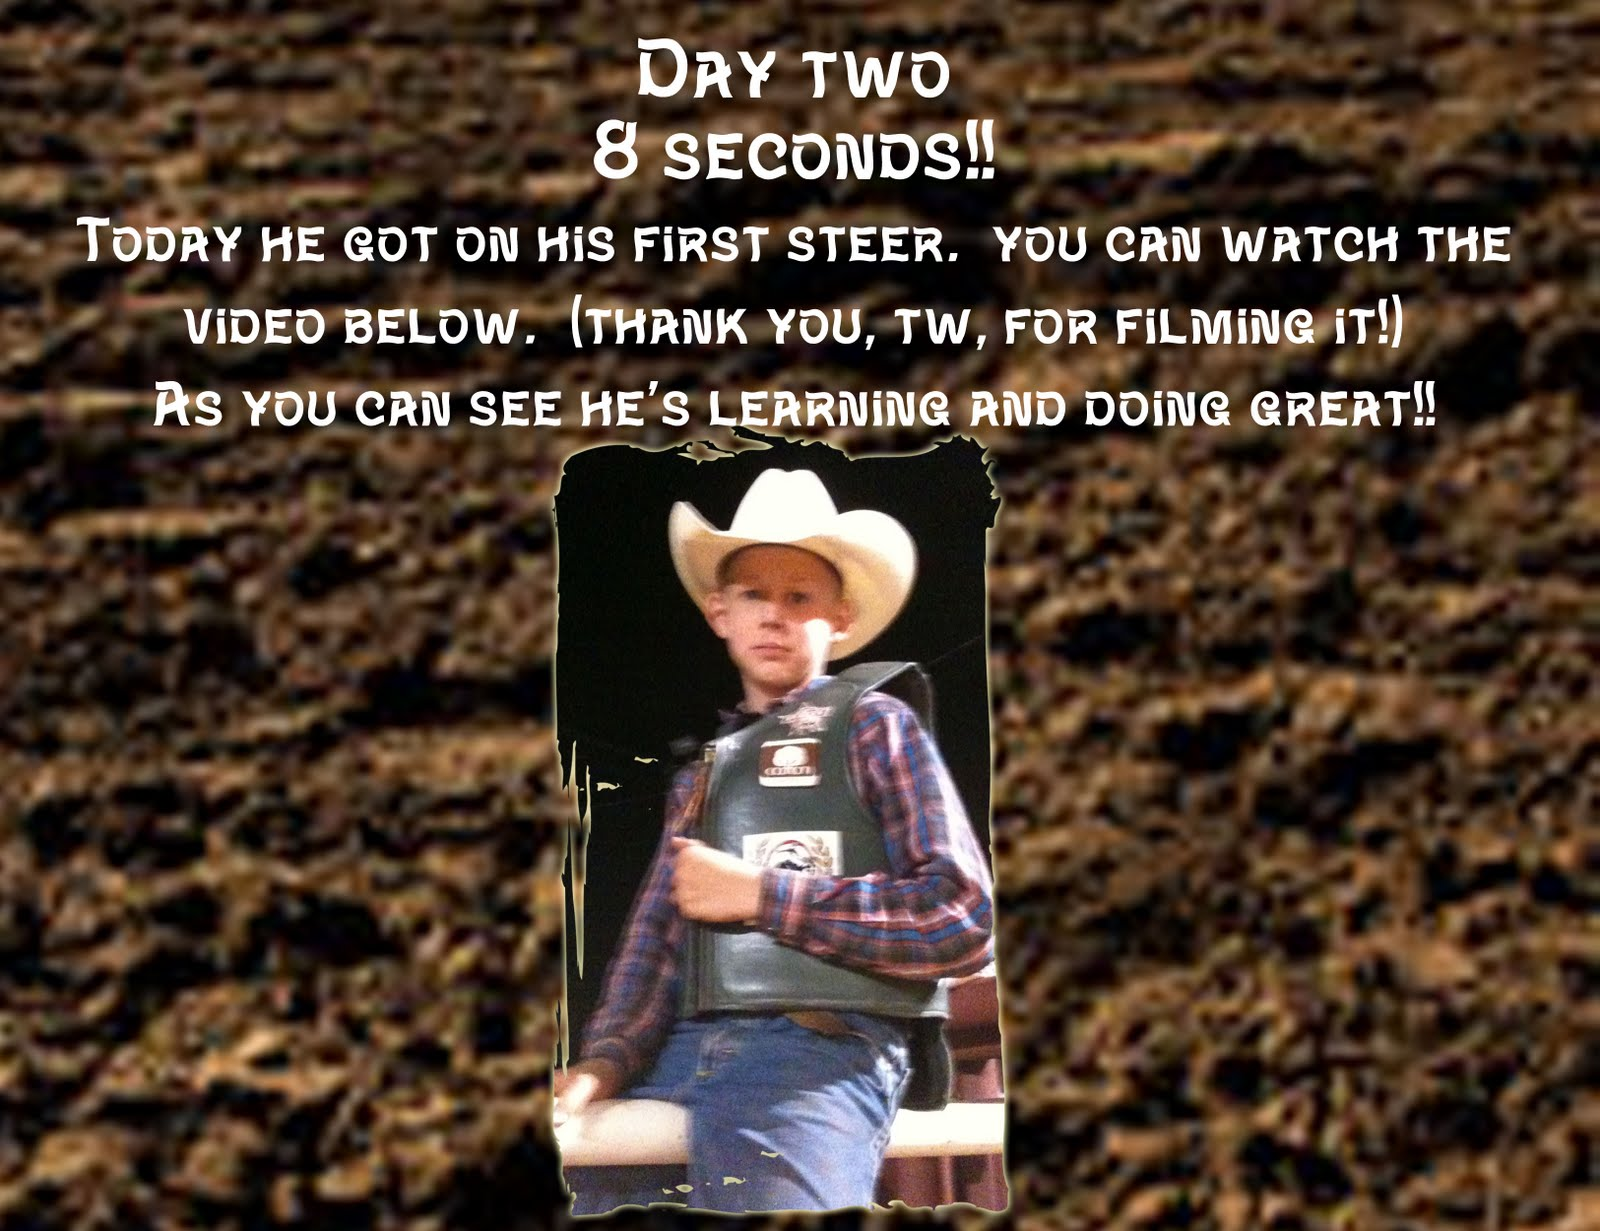 Funny Bull Riding Quotes: Bull Riding Quotes And Poems. QuotesGram